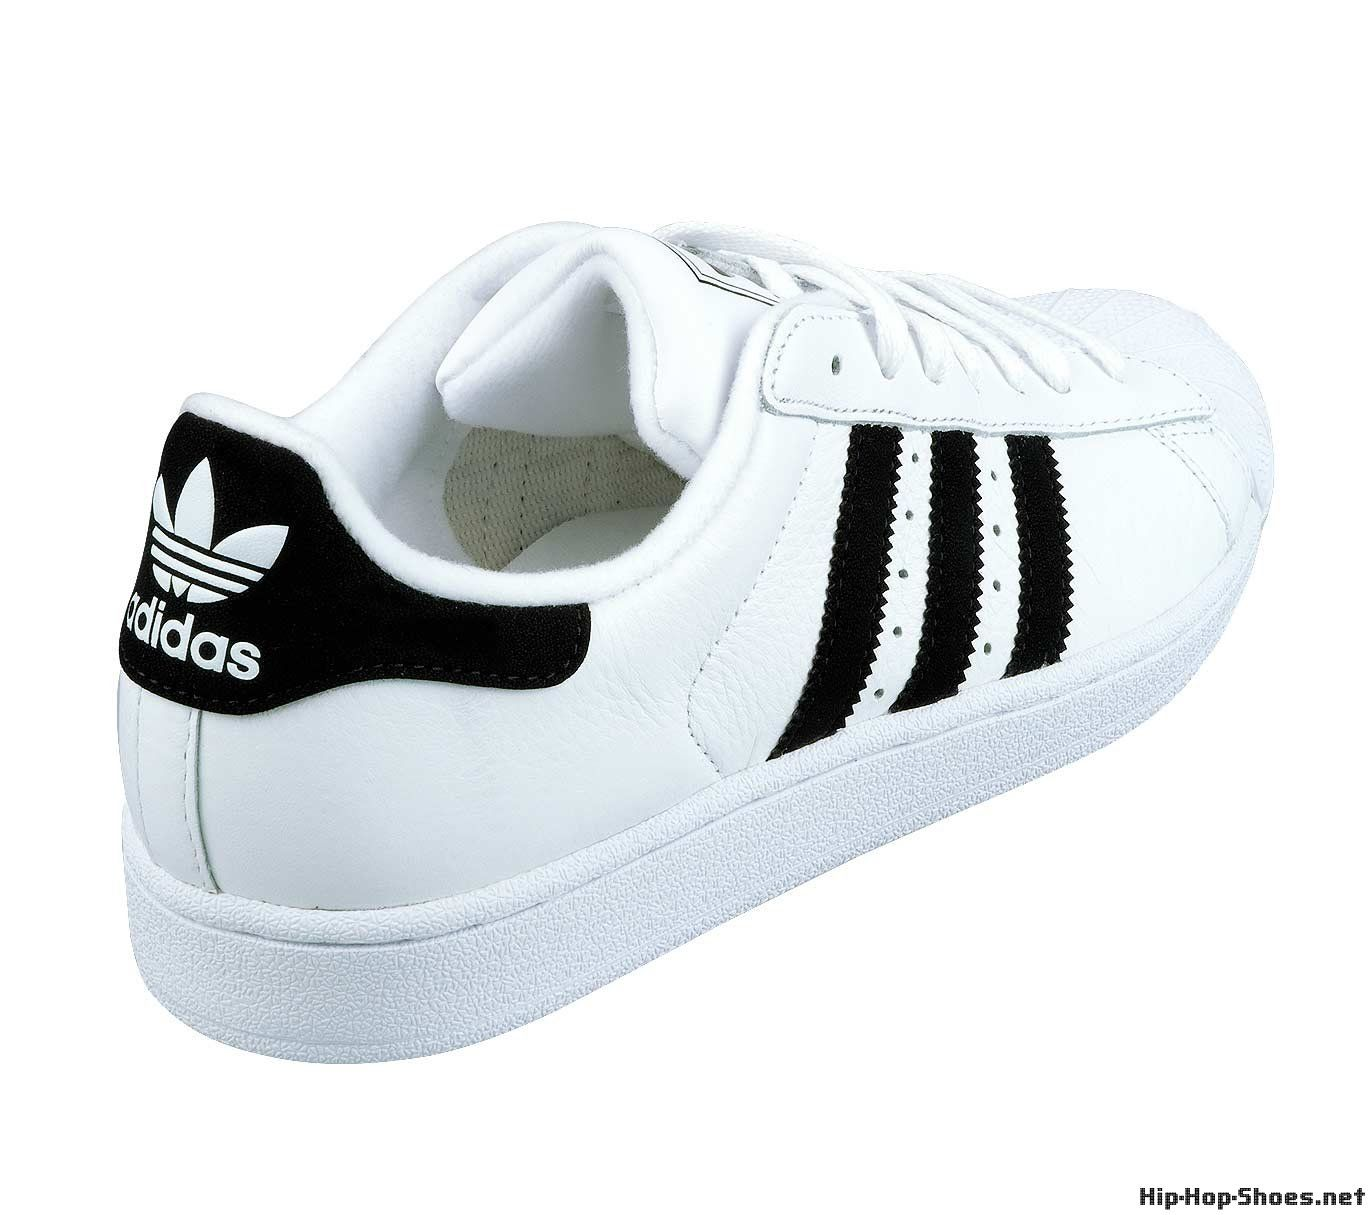 Tuneswag Hip Hop/Rap. Adidas SuperstarDream ShoesClassic WhiteBlack ...